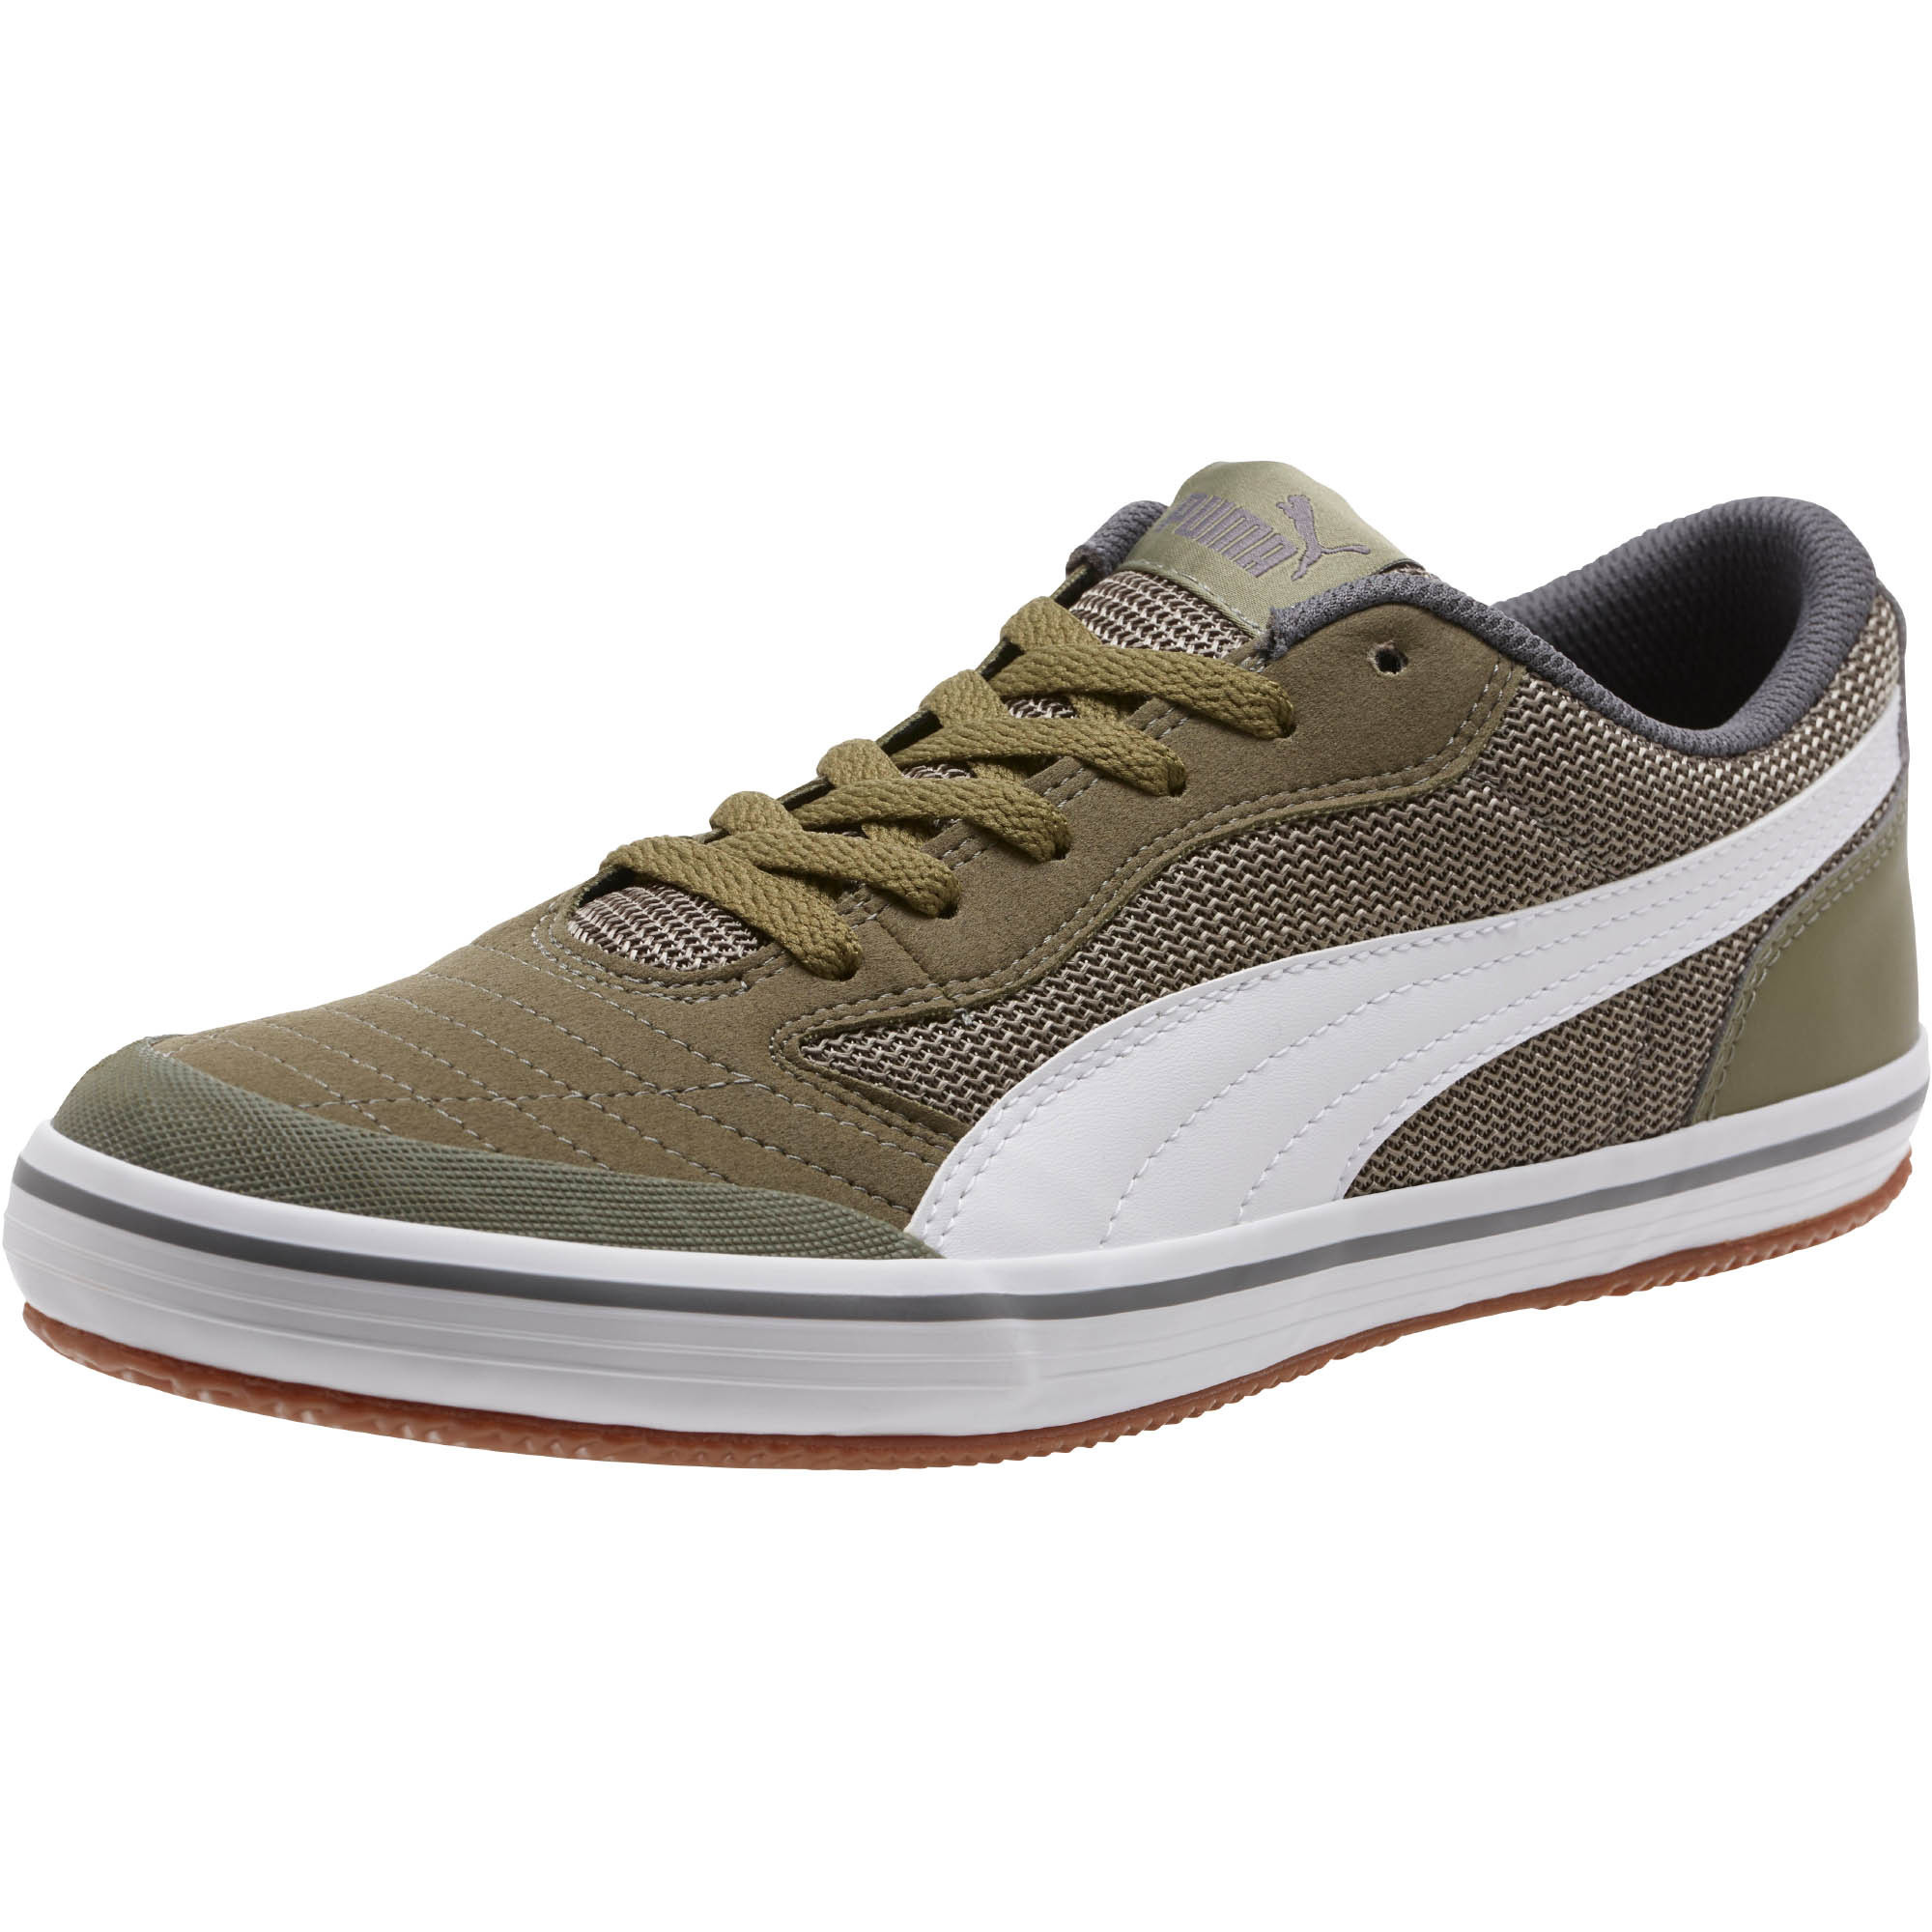 PUMA-Men-039-s-Astro-Sala-Sneakers thumbnail 24